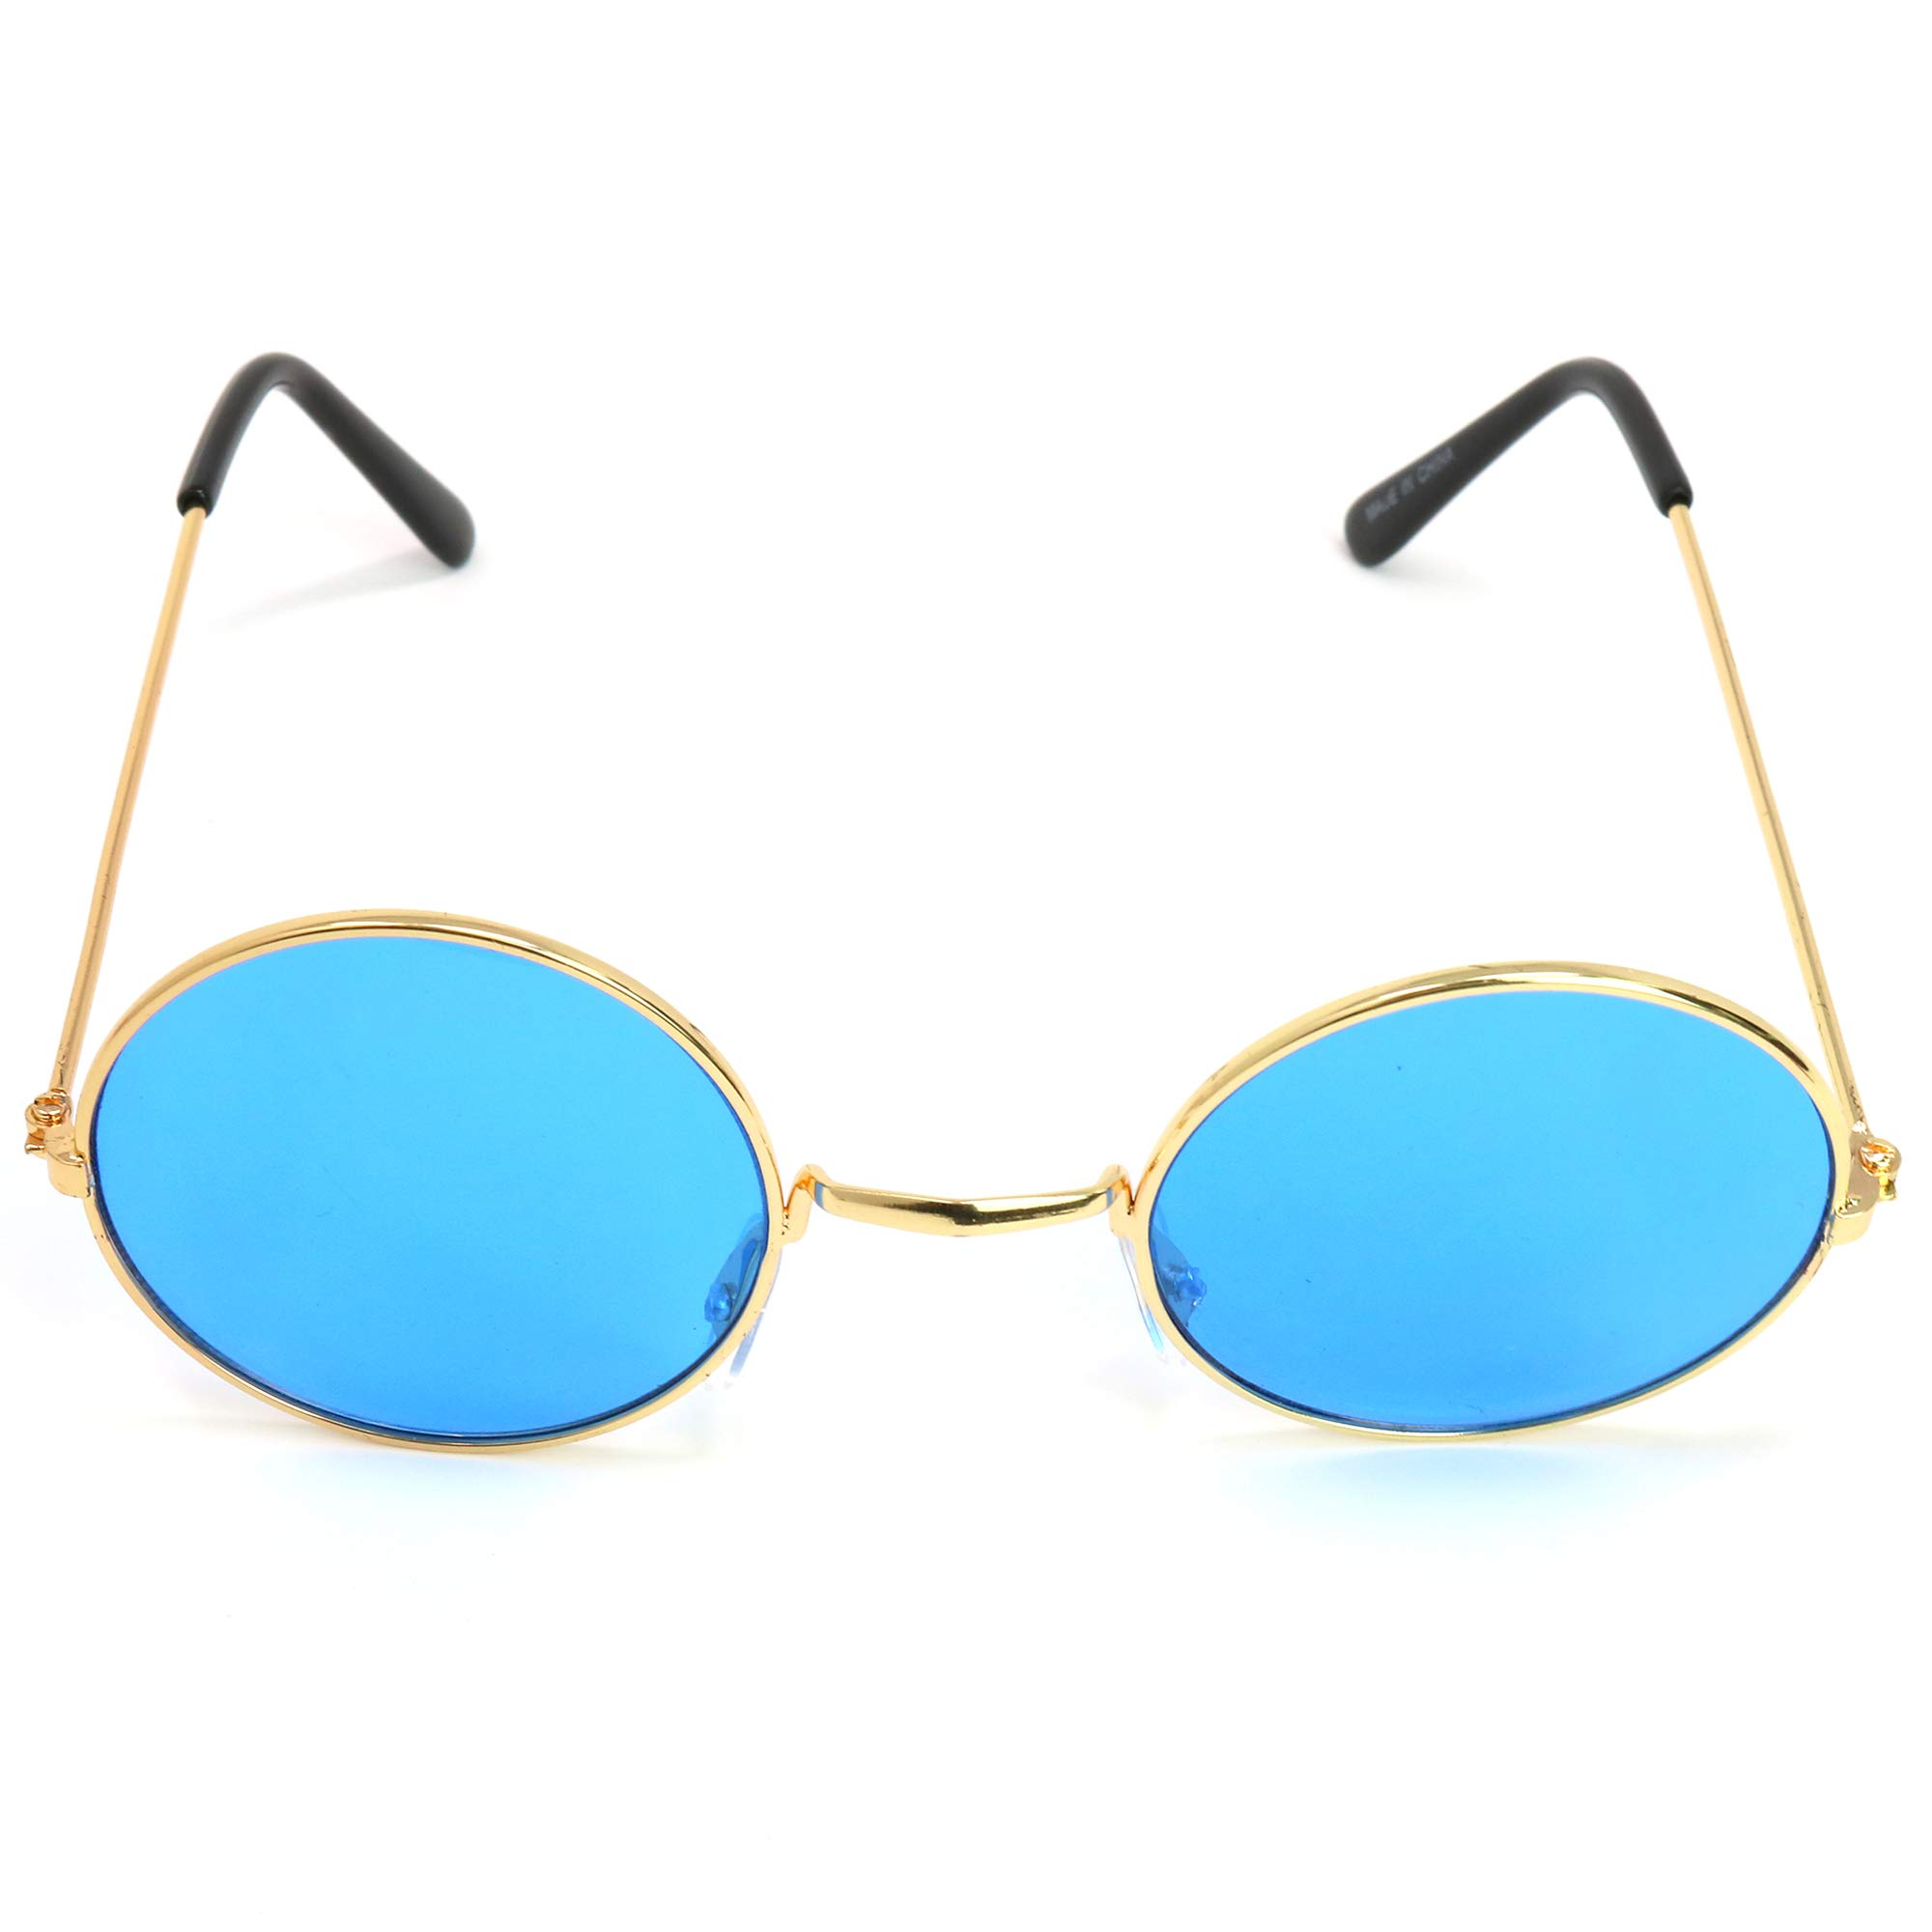 61b159c40ab7 Skeleteen John Lennon Hippie Sunglasses – Blue 60's Style Circle Glasses – 1  Pair